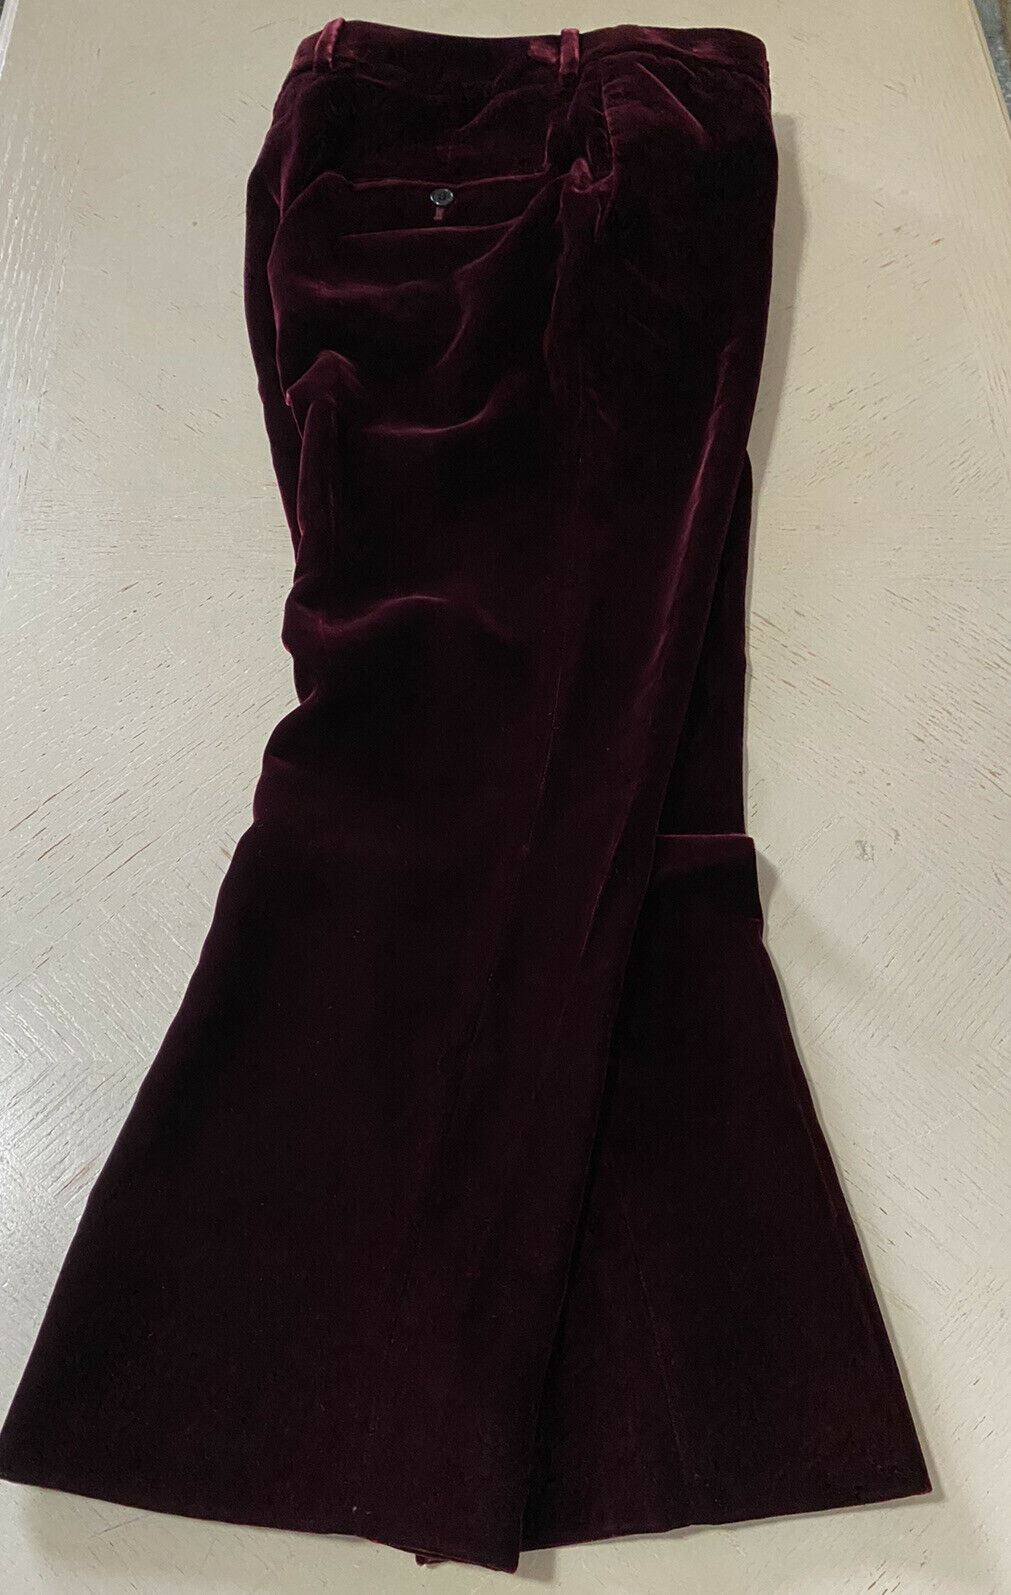 New $1950 Saint Laurent Women Cropped Flare Pants DK Burgundy Size 38 Italy